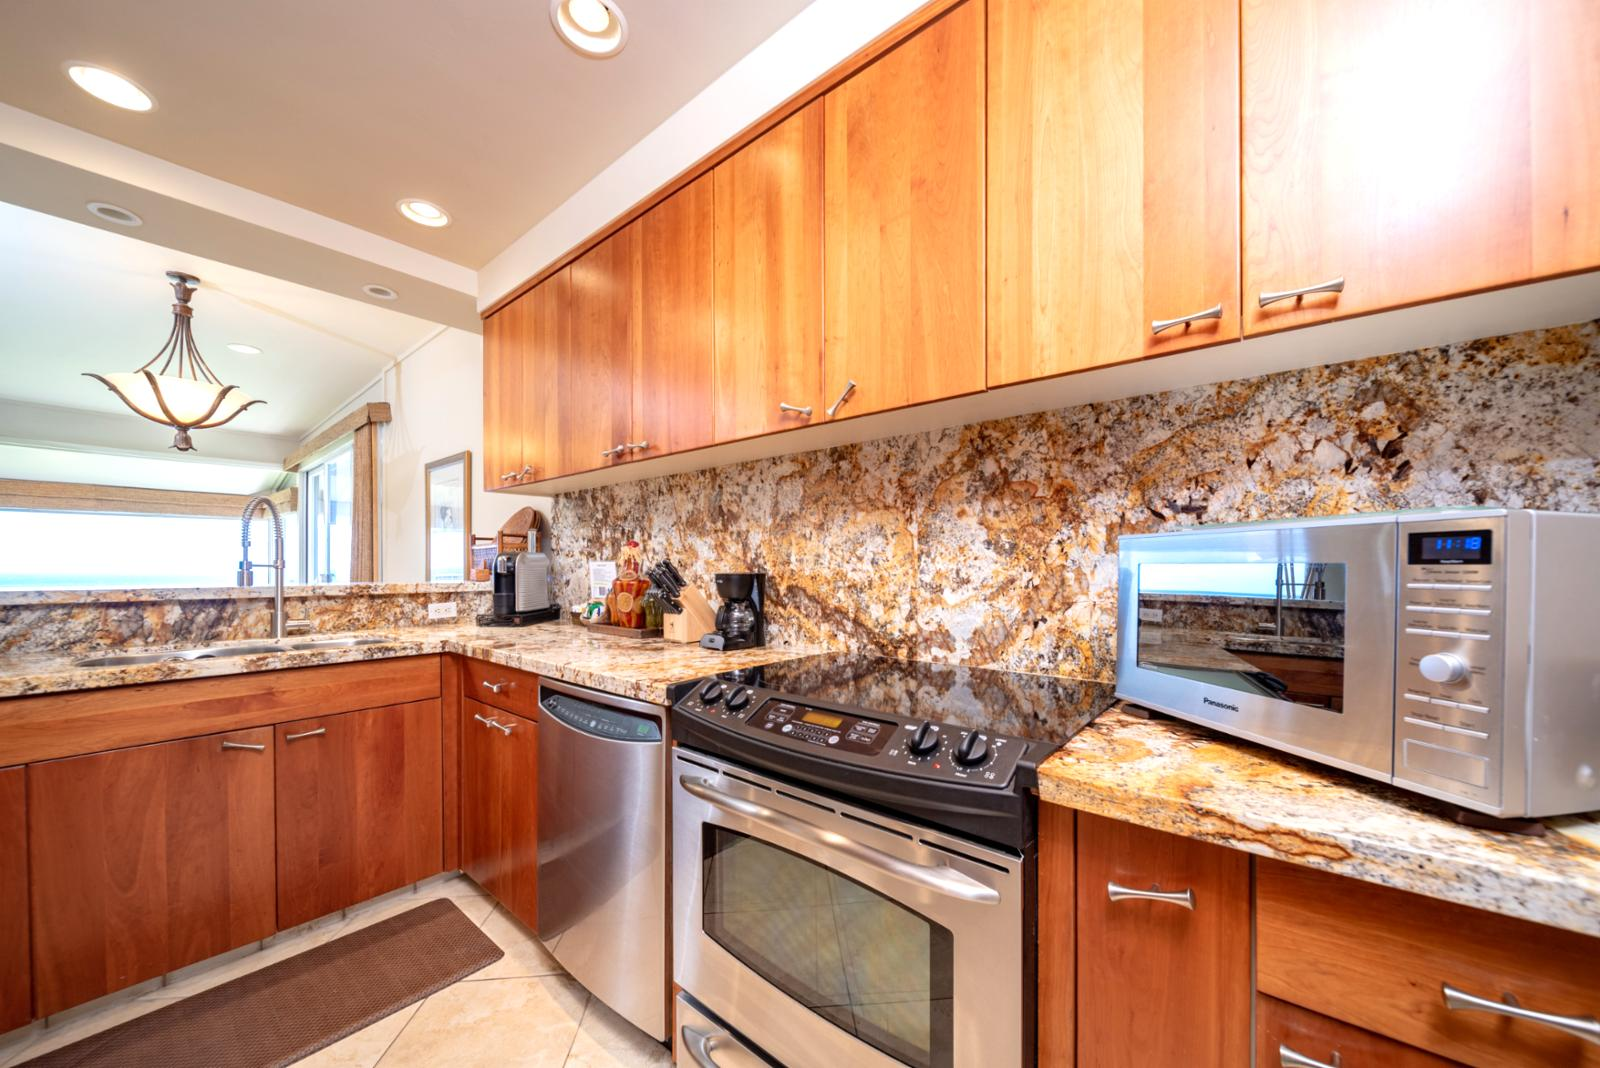 Ocean views from the kitchen!